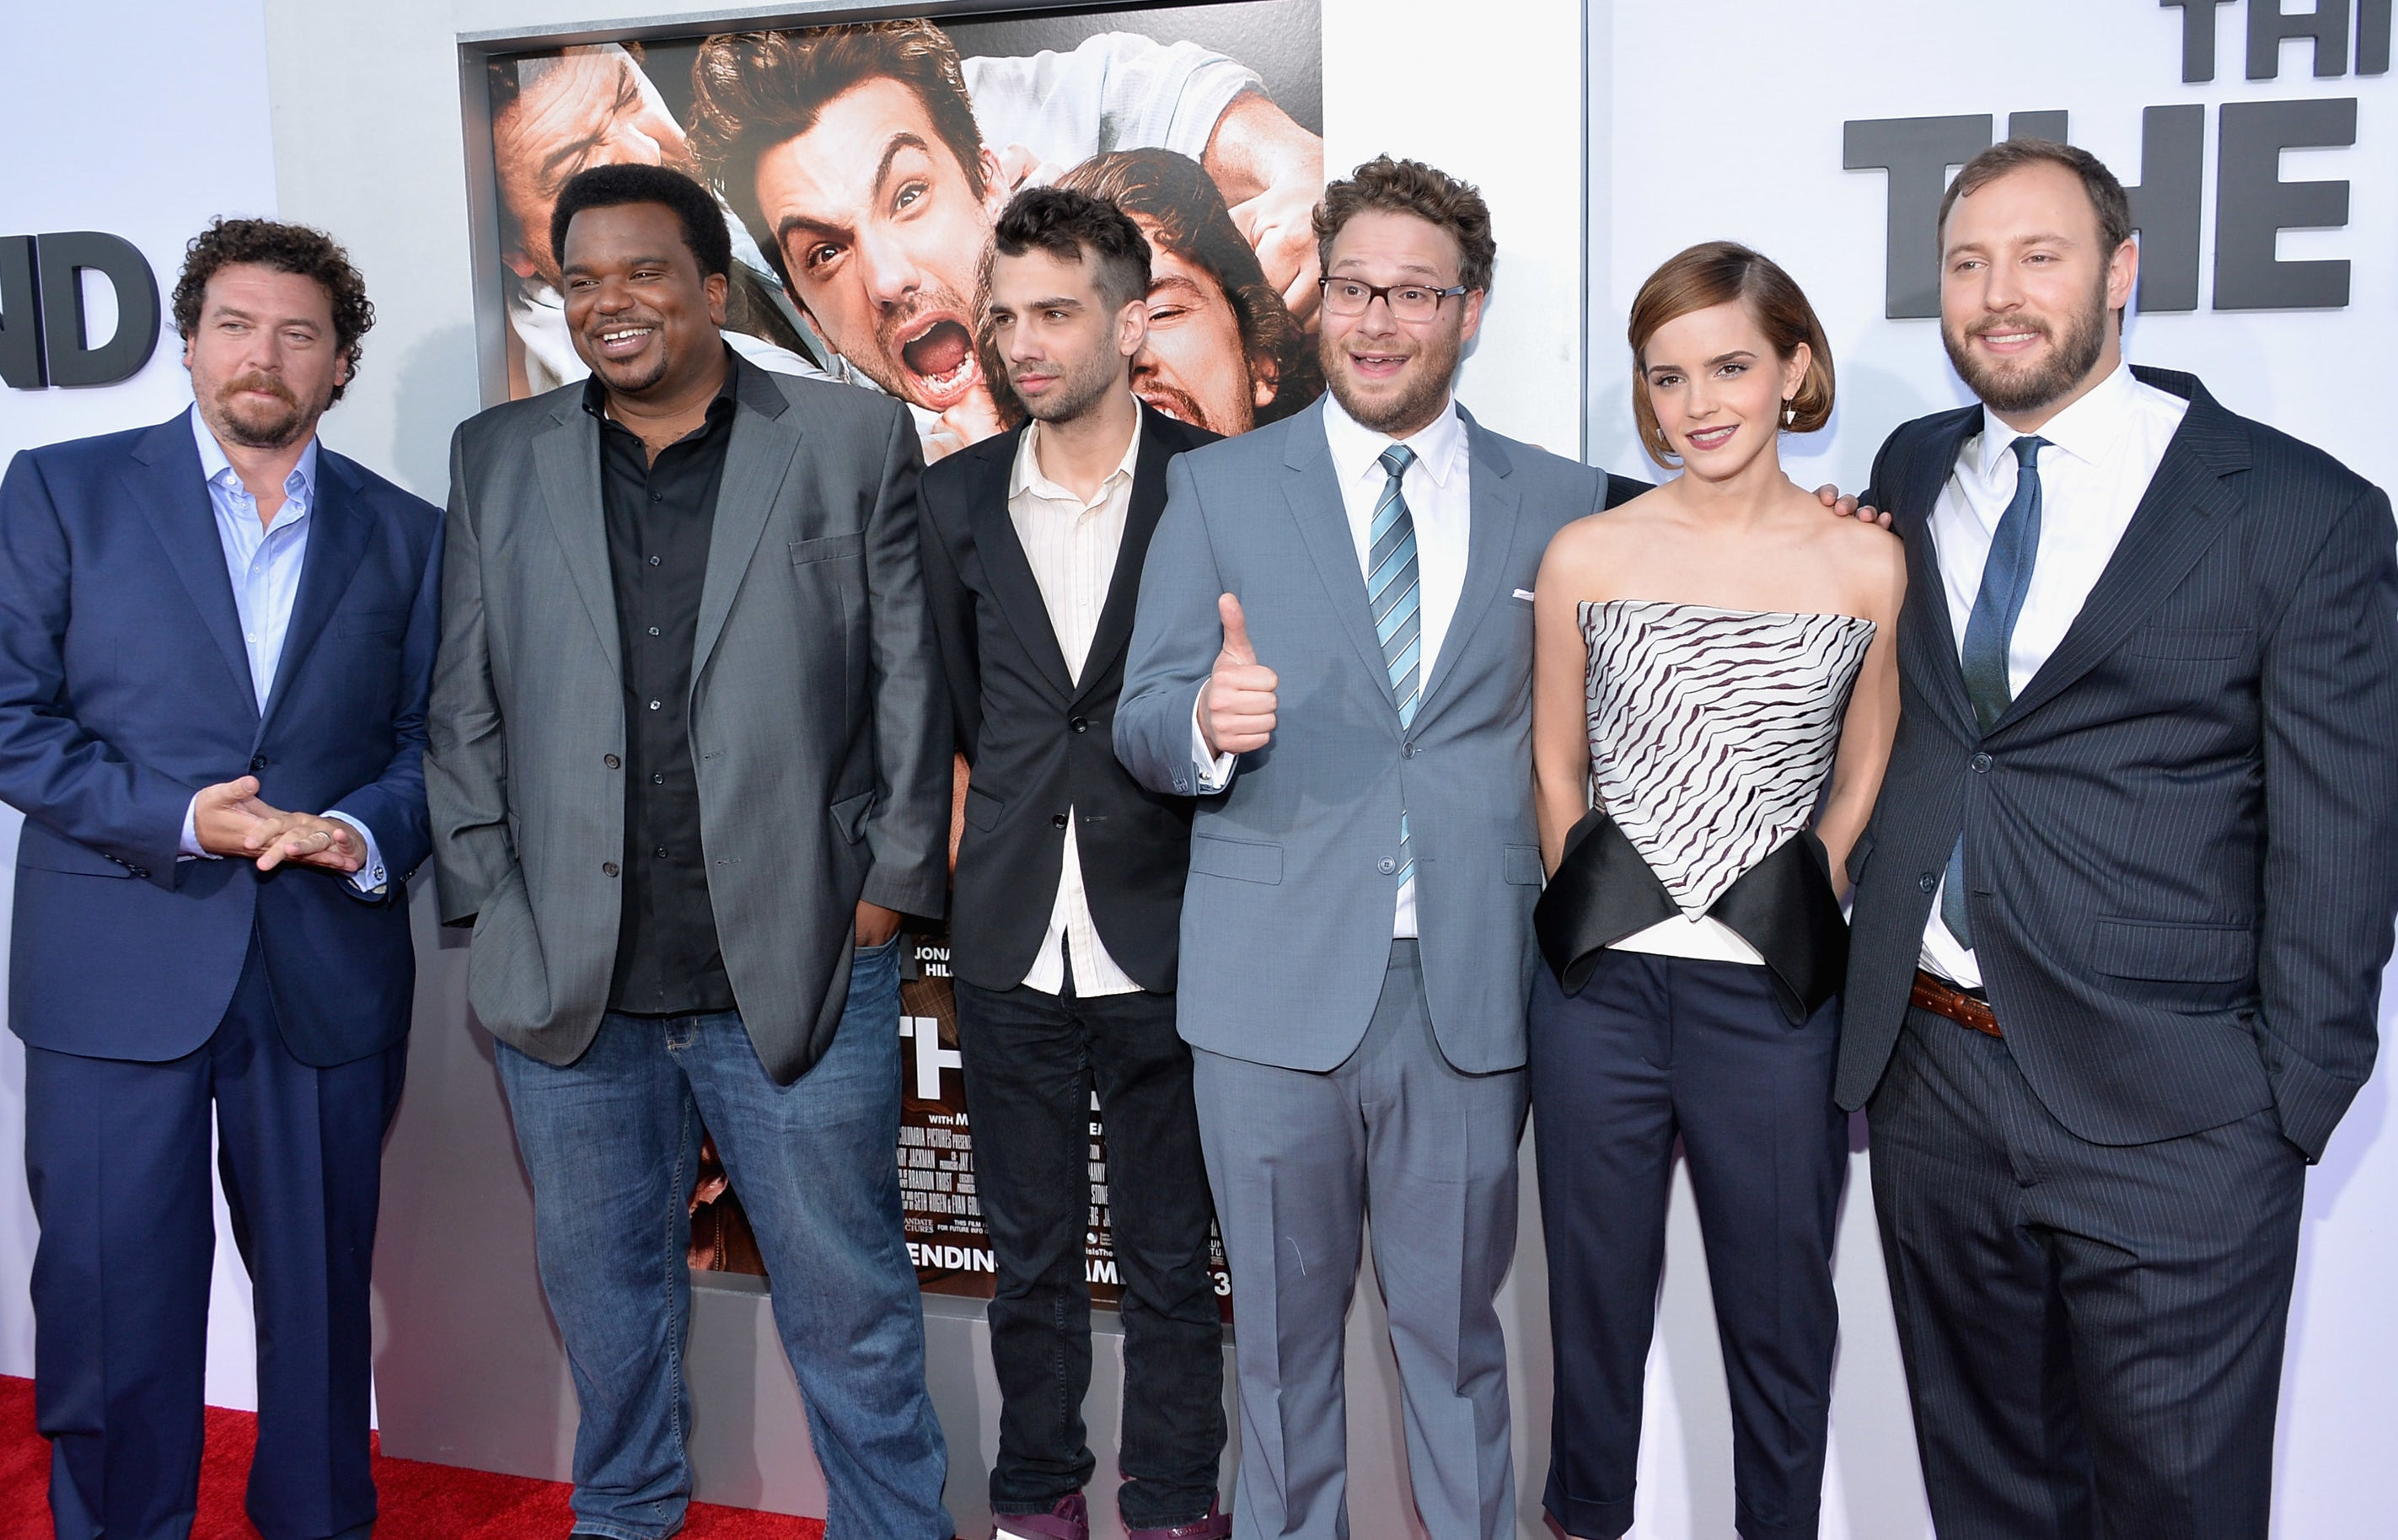 Emma poses with Seth and the rest of the cast at the premiere